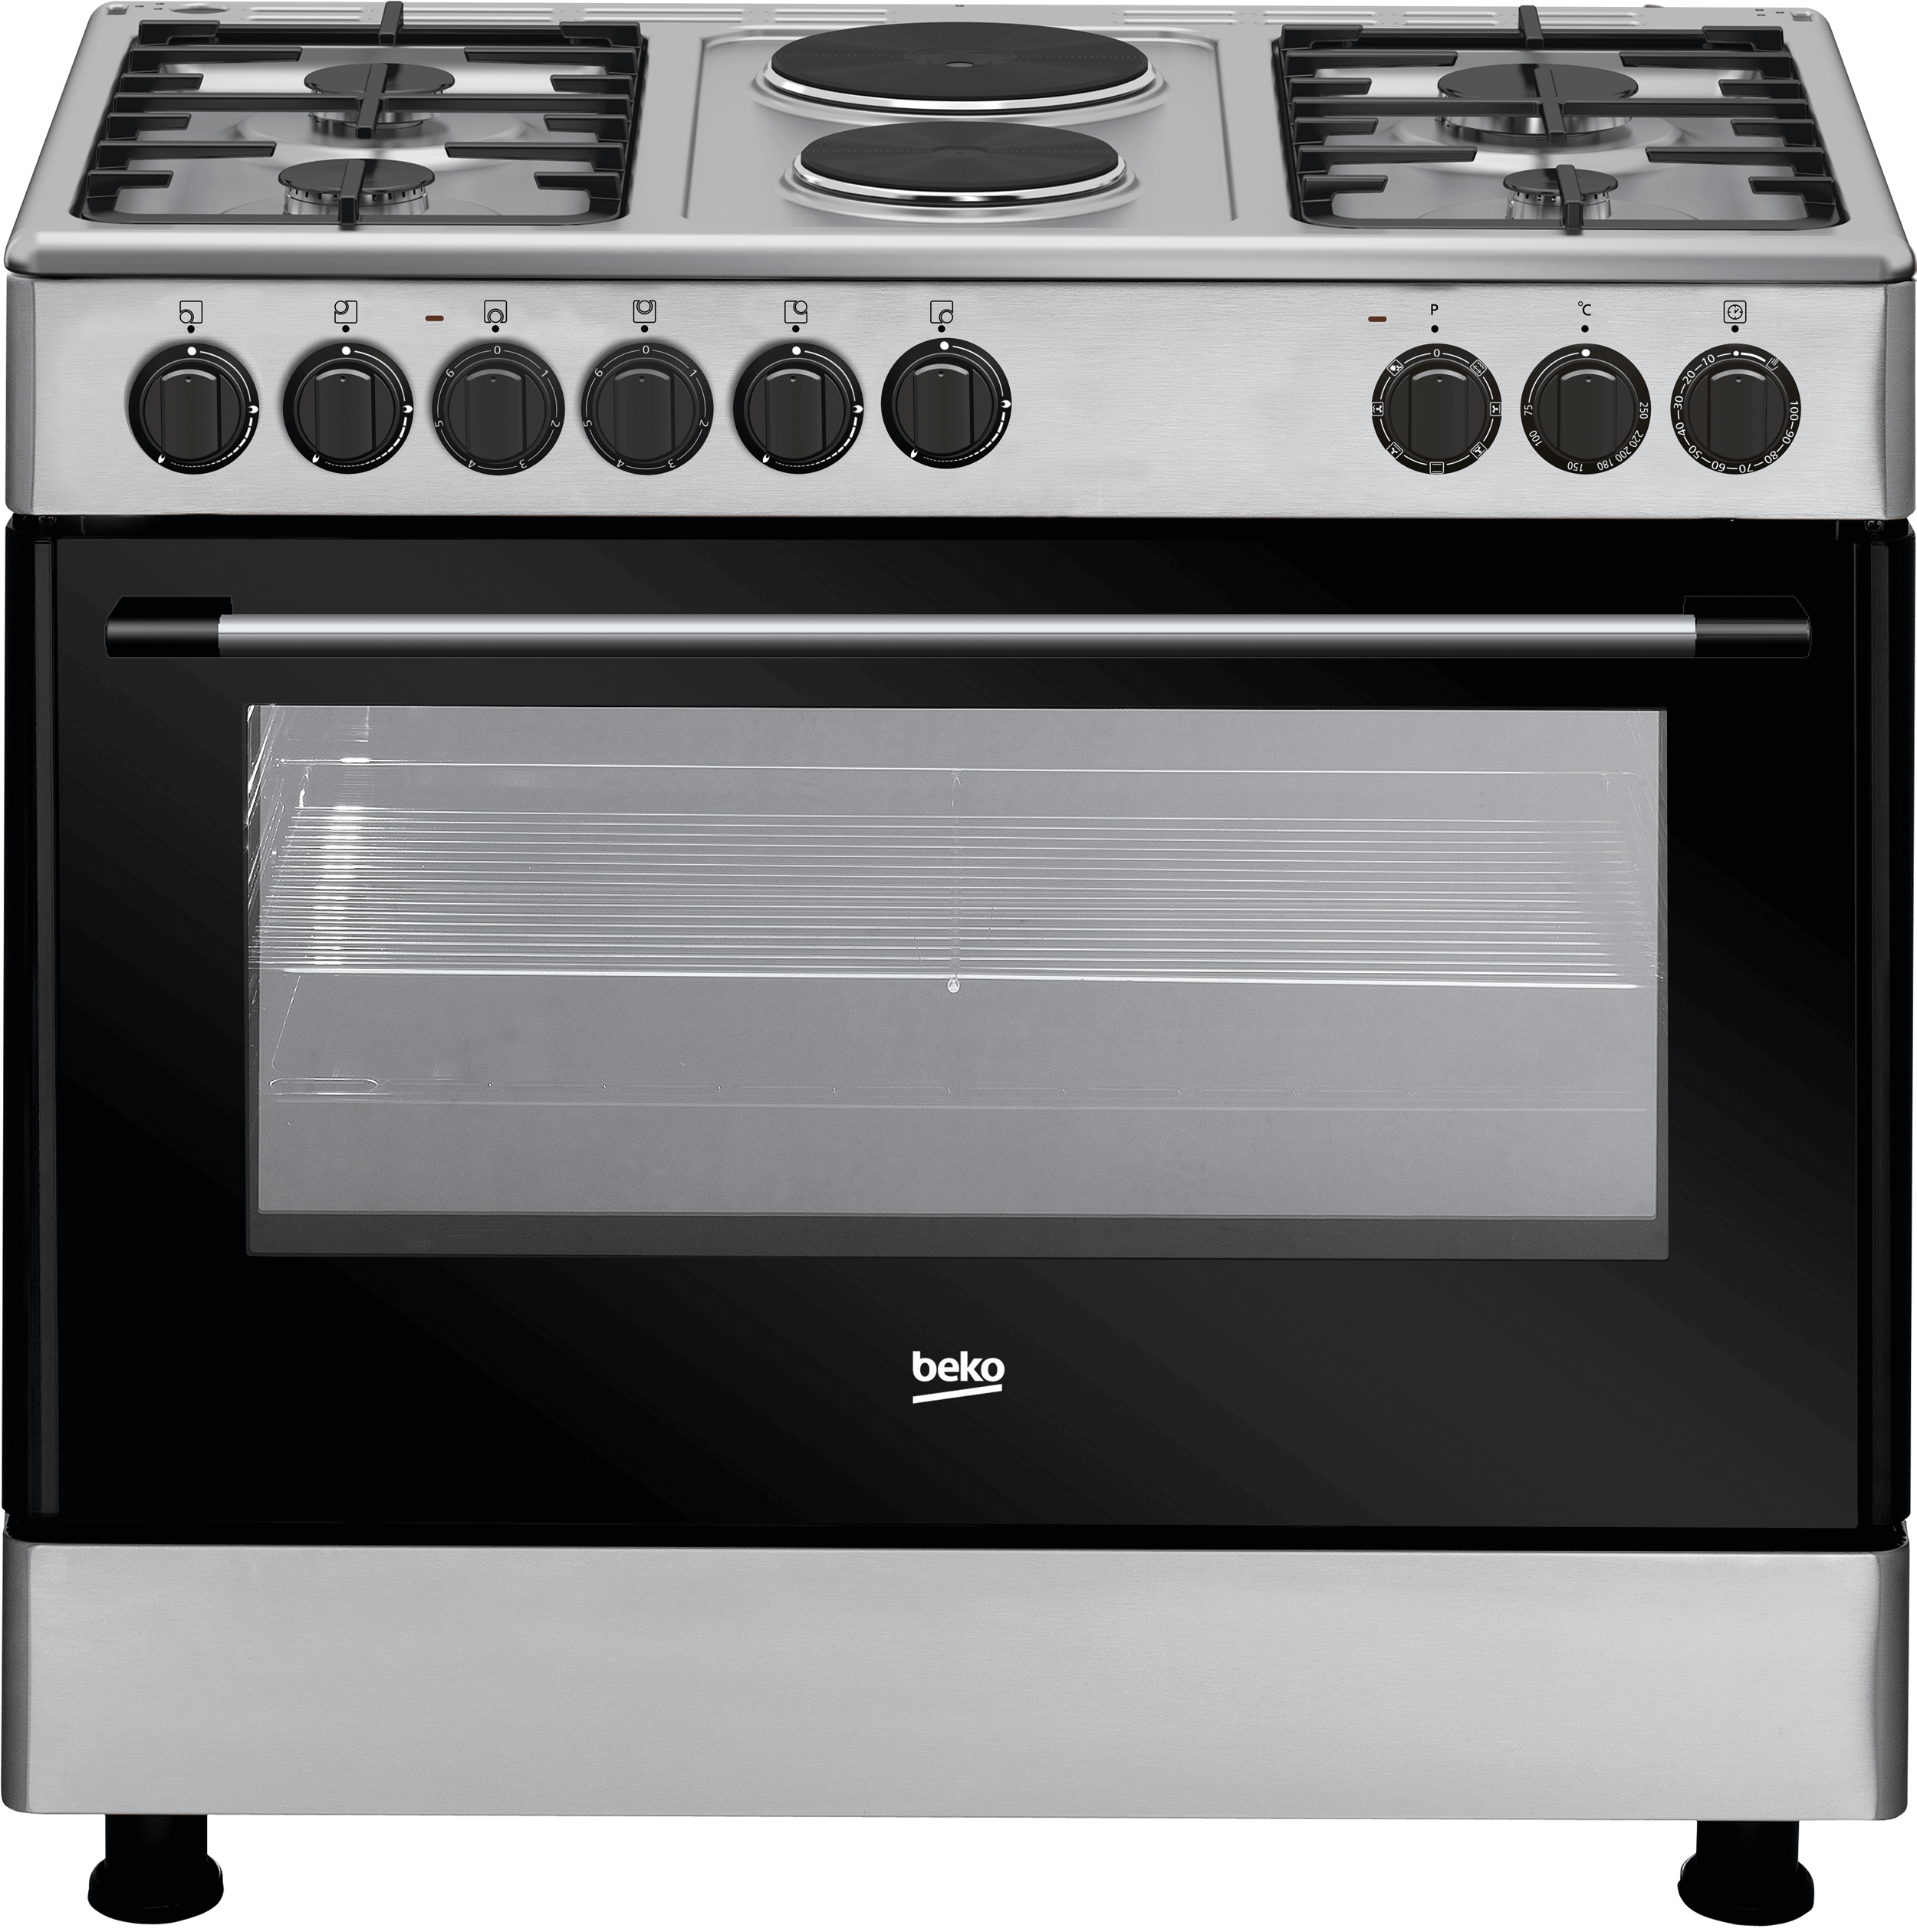 Freestanding Cooker (Fan-assisted, 90 cm) GE 12121 DX